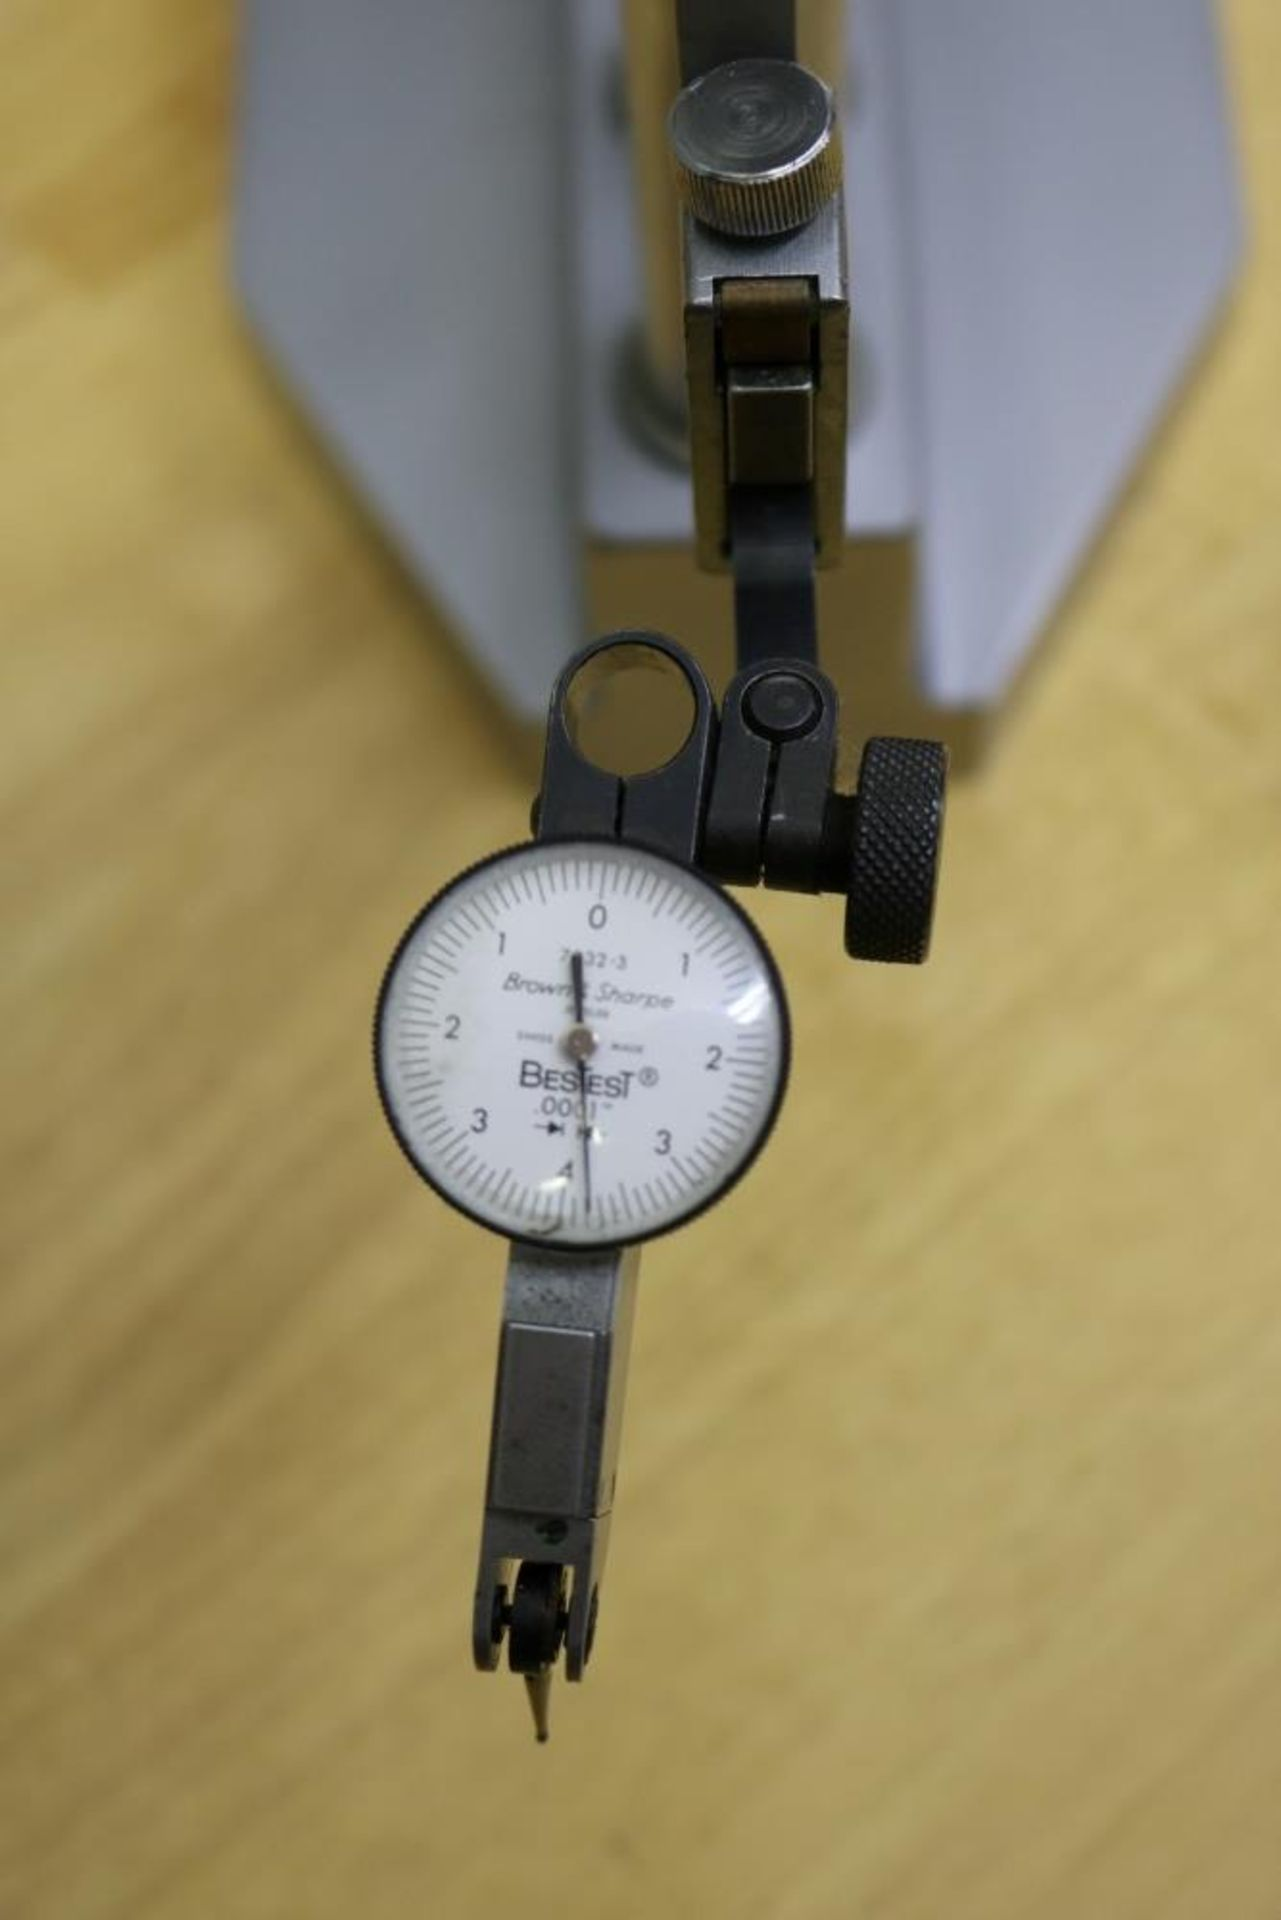 "Lot 26 - Mitutoyo Height Gage .001-18"" with Borwn & Sharpe Dial Indicator"